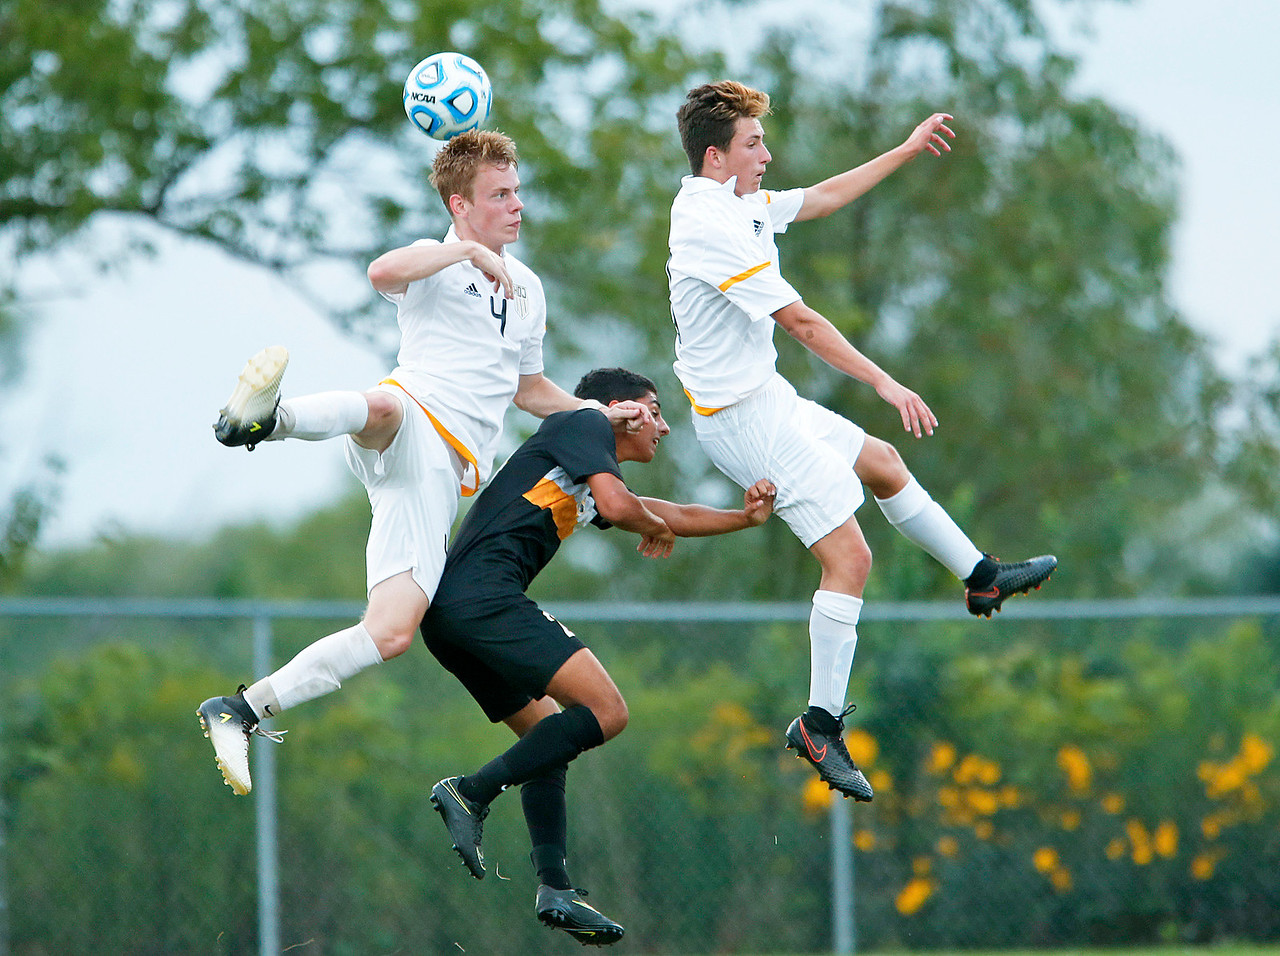 Daniel Buirge (4) from Jacobs heads the ball over Antar Abraham (24) from Metea Valley during the first half of their game at Jacobs High School on Monday, August 21, 2017 in Algonquin, Illinois. The Mustangs defeated the Golden Eagles 3-2. John Konstantaras photo for the Northwest Herald